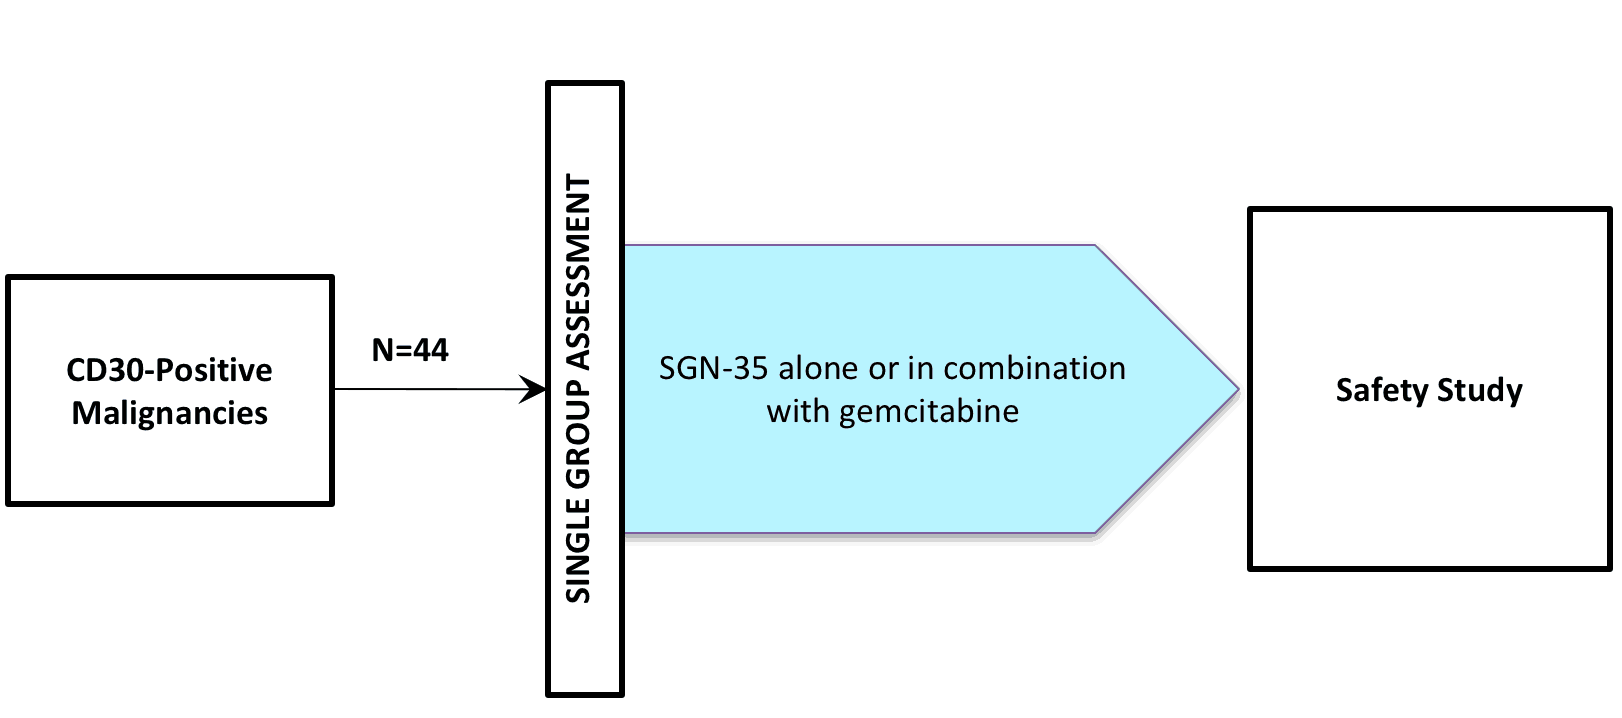 (CLINICAL TRIAL / BRENTUXIMAB VEDOTIN / SGN-035 / ADCETRIS®)